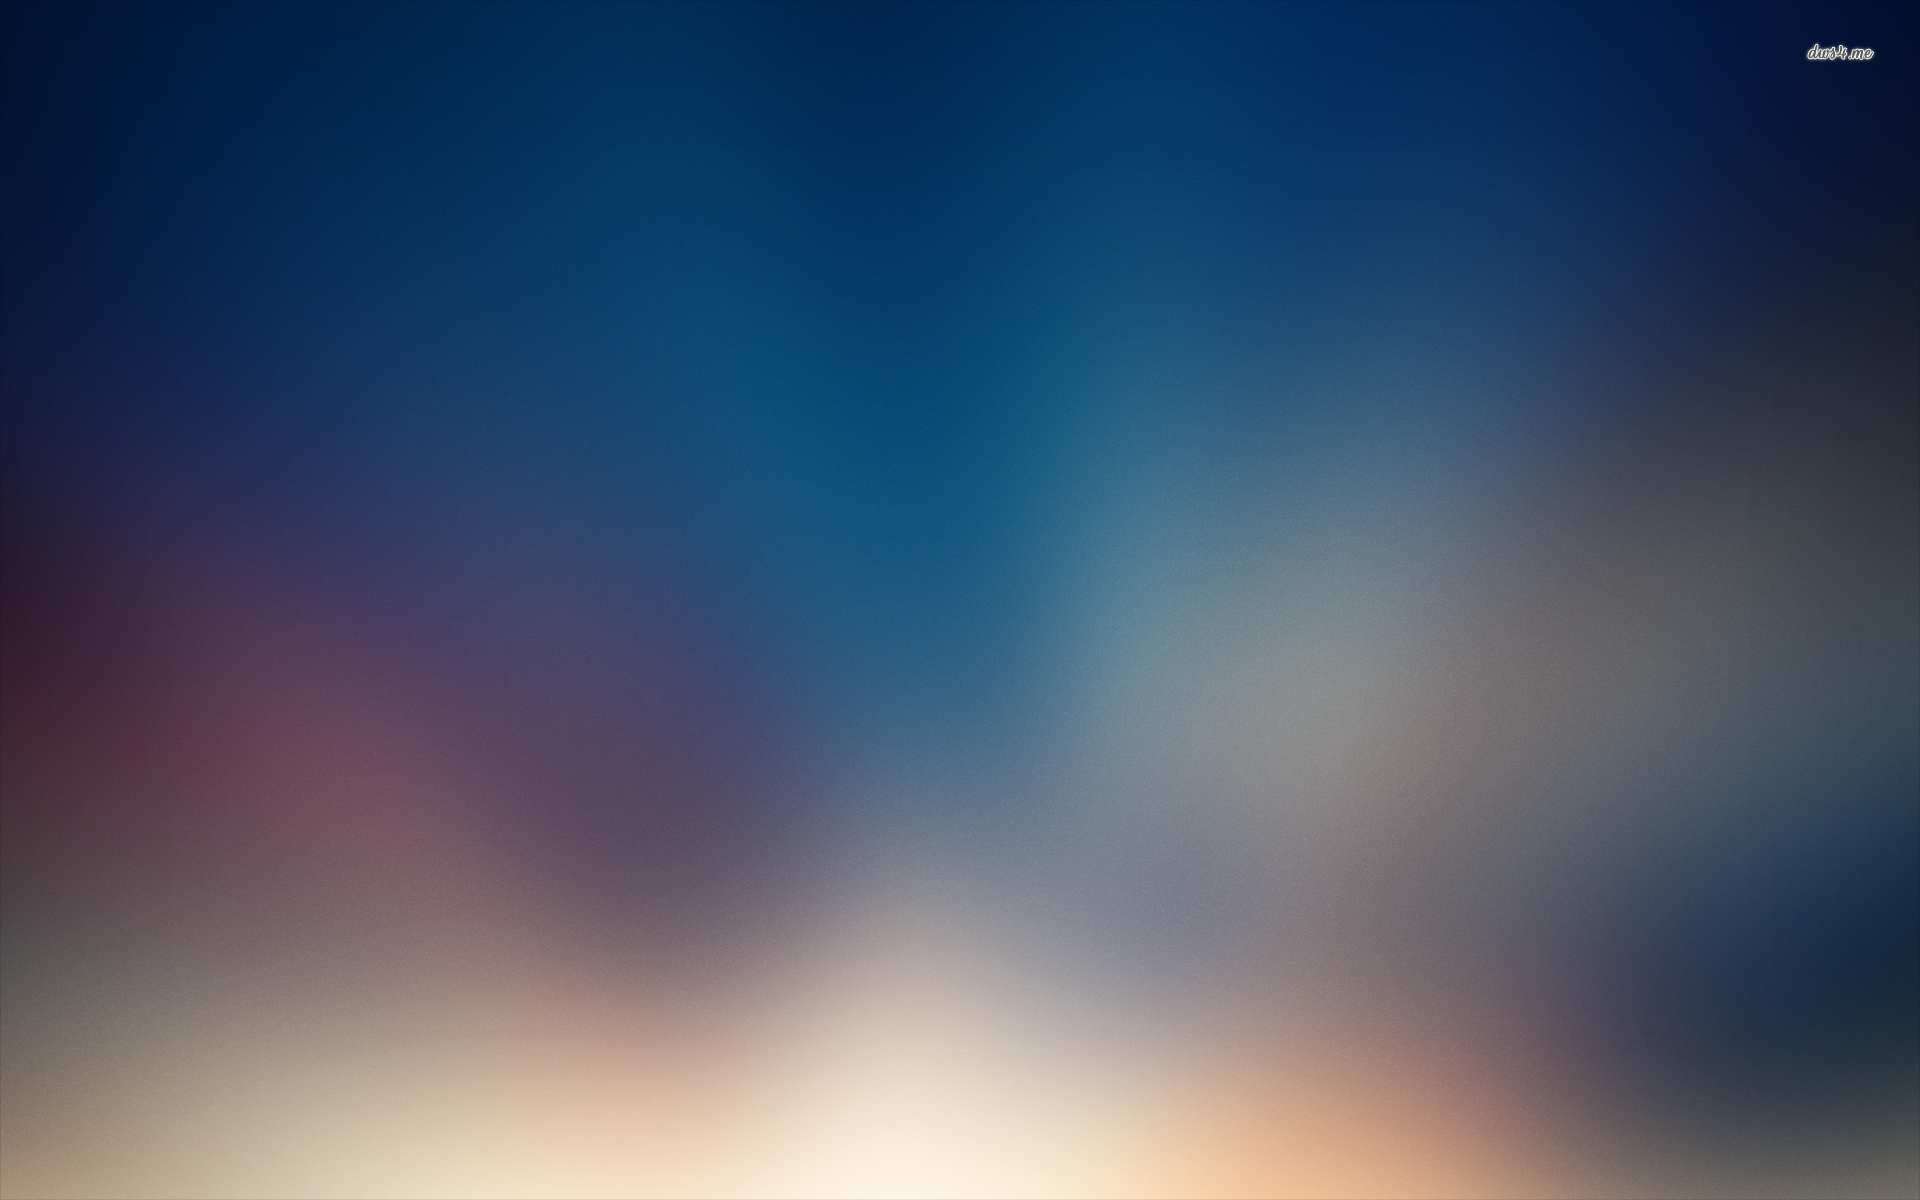 ... Blurred flare wallpaper 1920x1200 ...